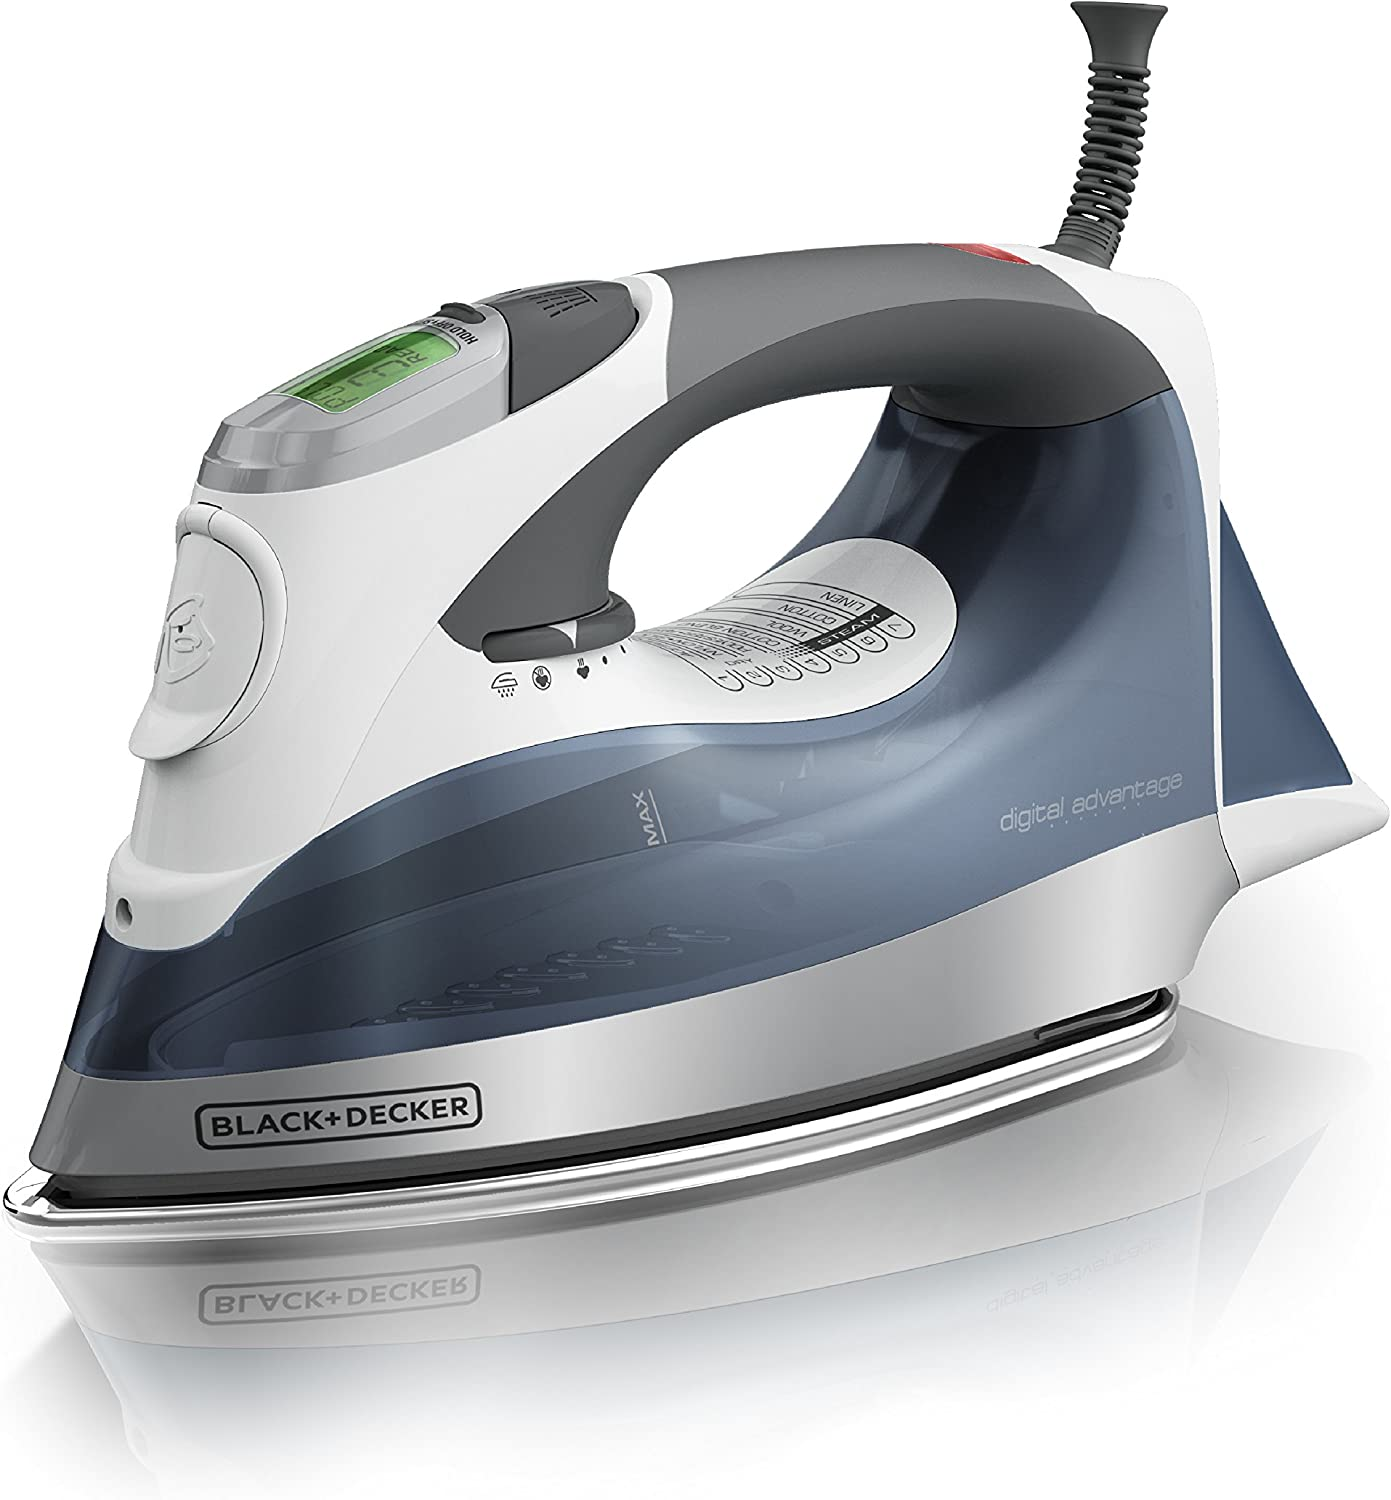 Black + Decker Digital Advantage Professional Steam Iron